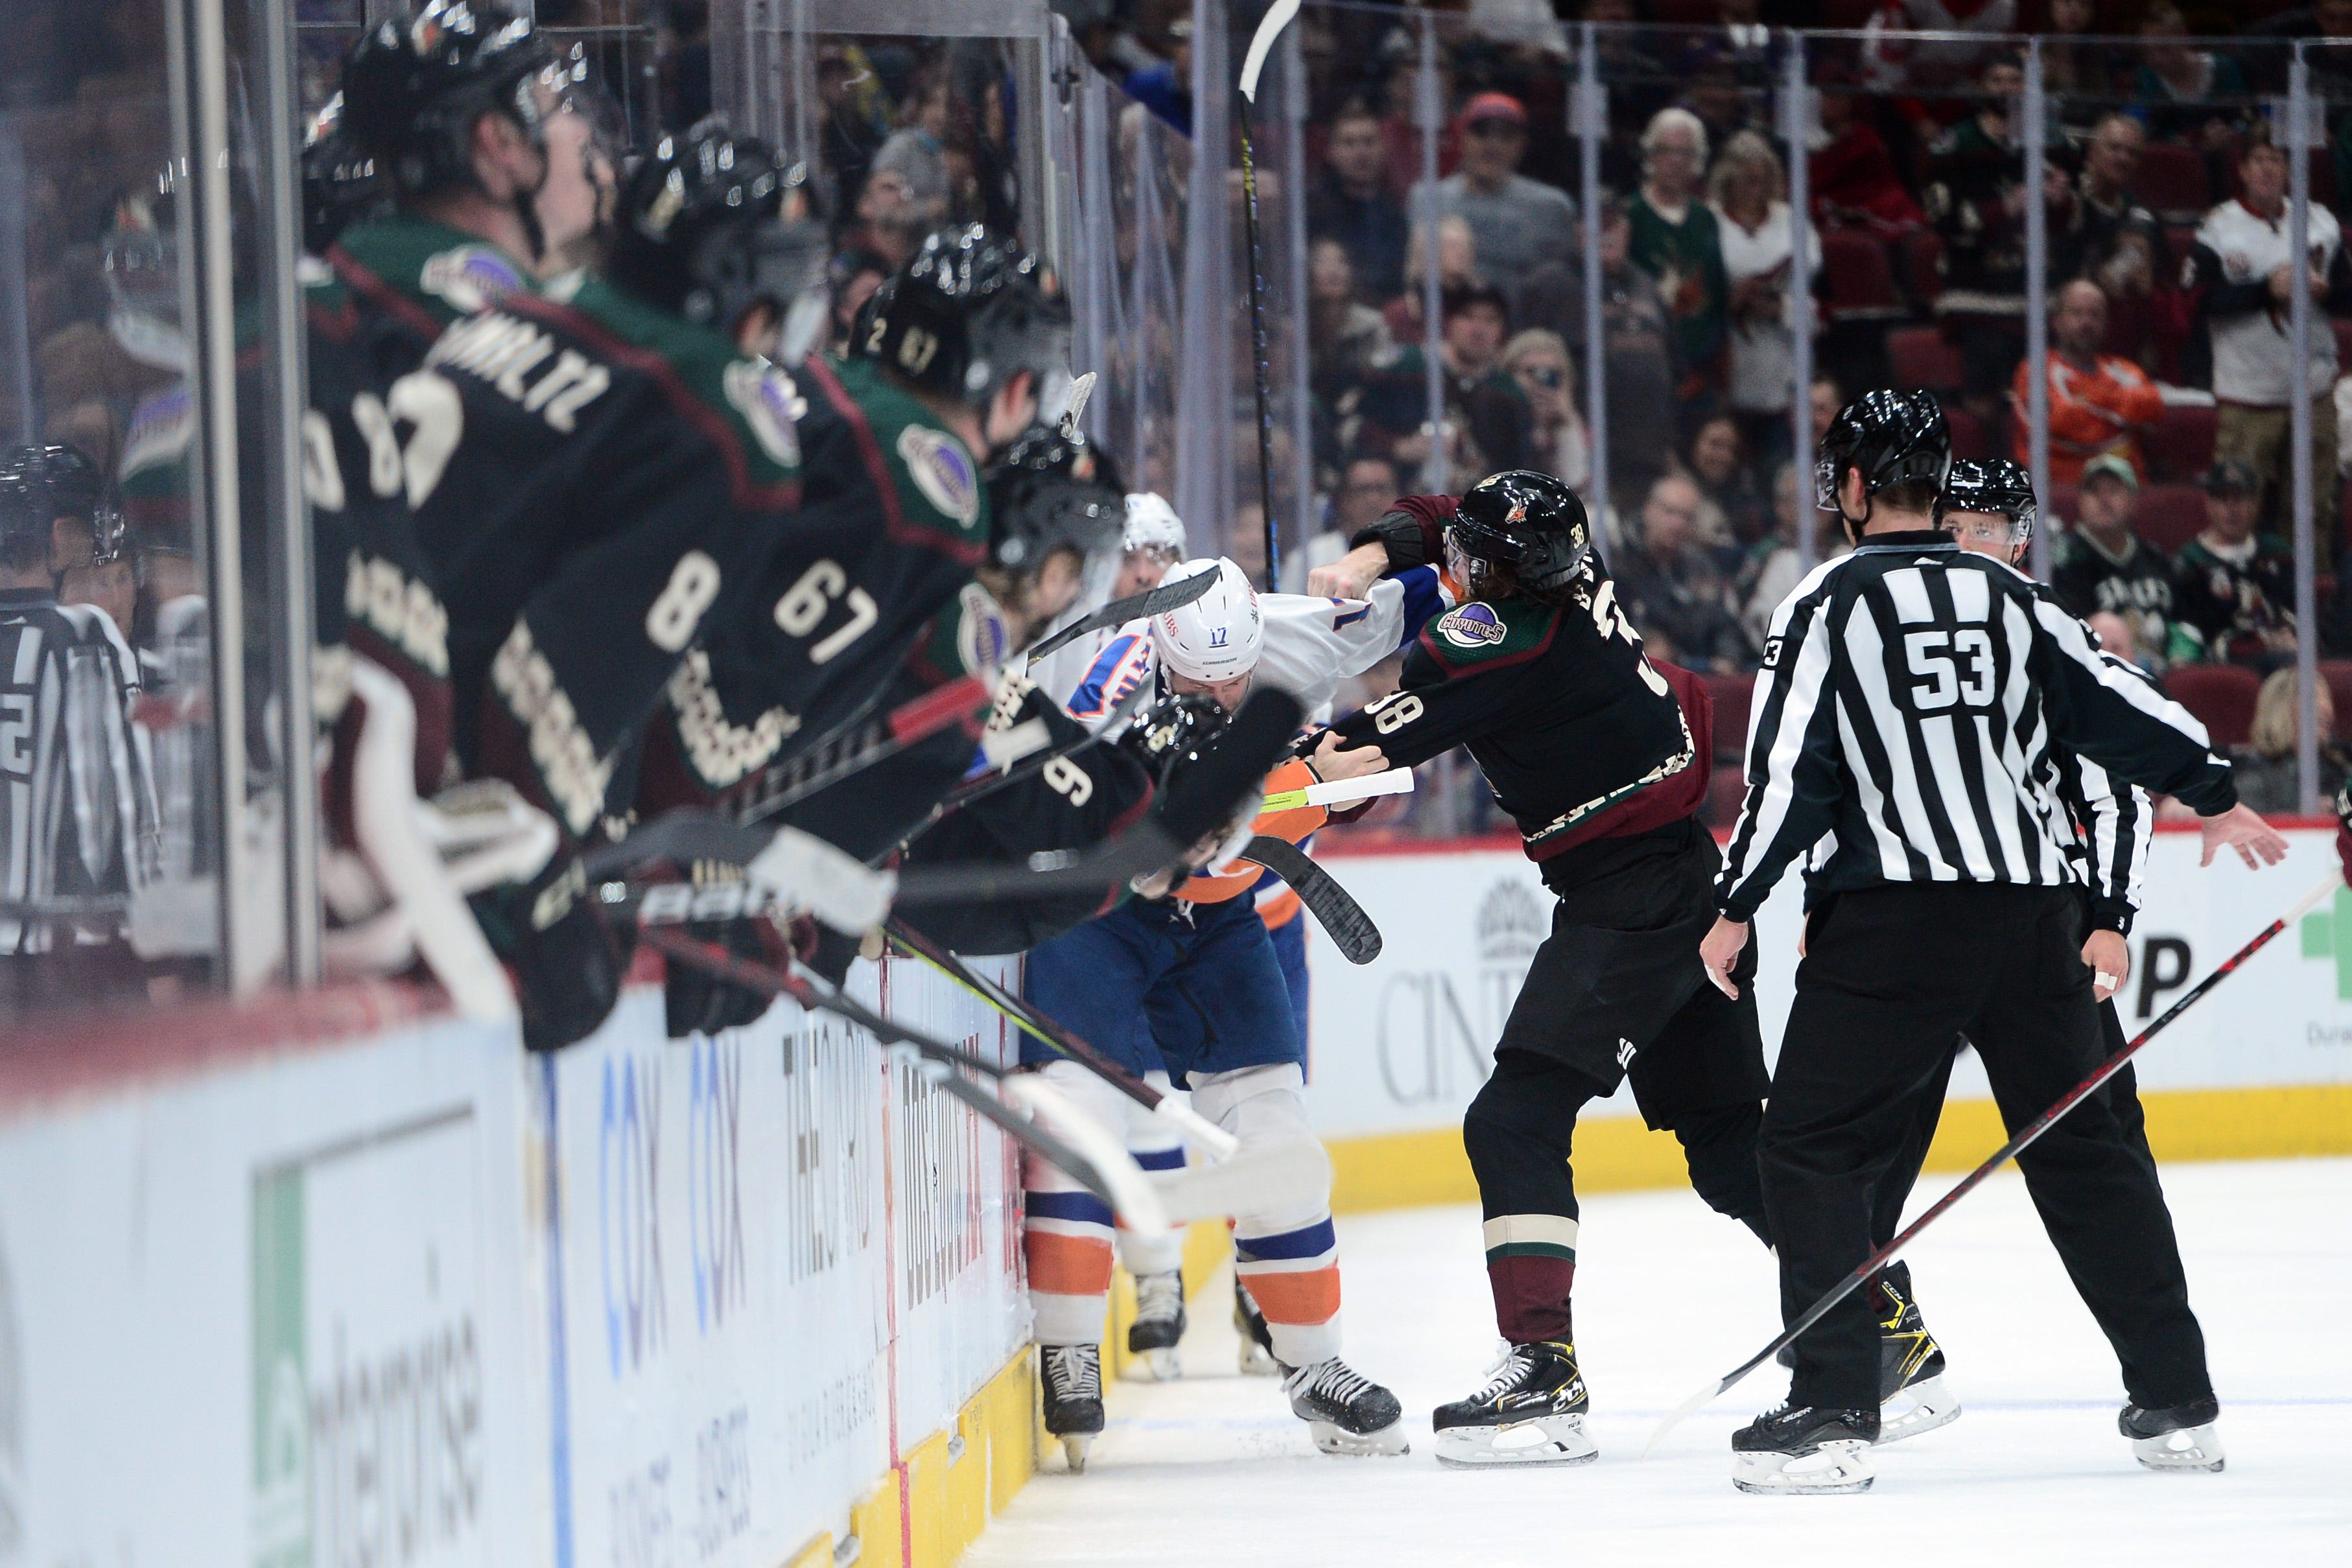 Coyotes shut out for first time this season in loss to New York Islanders